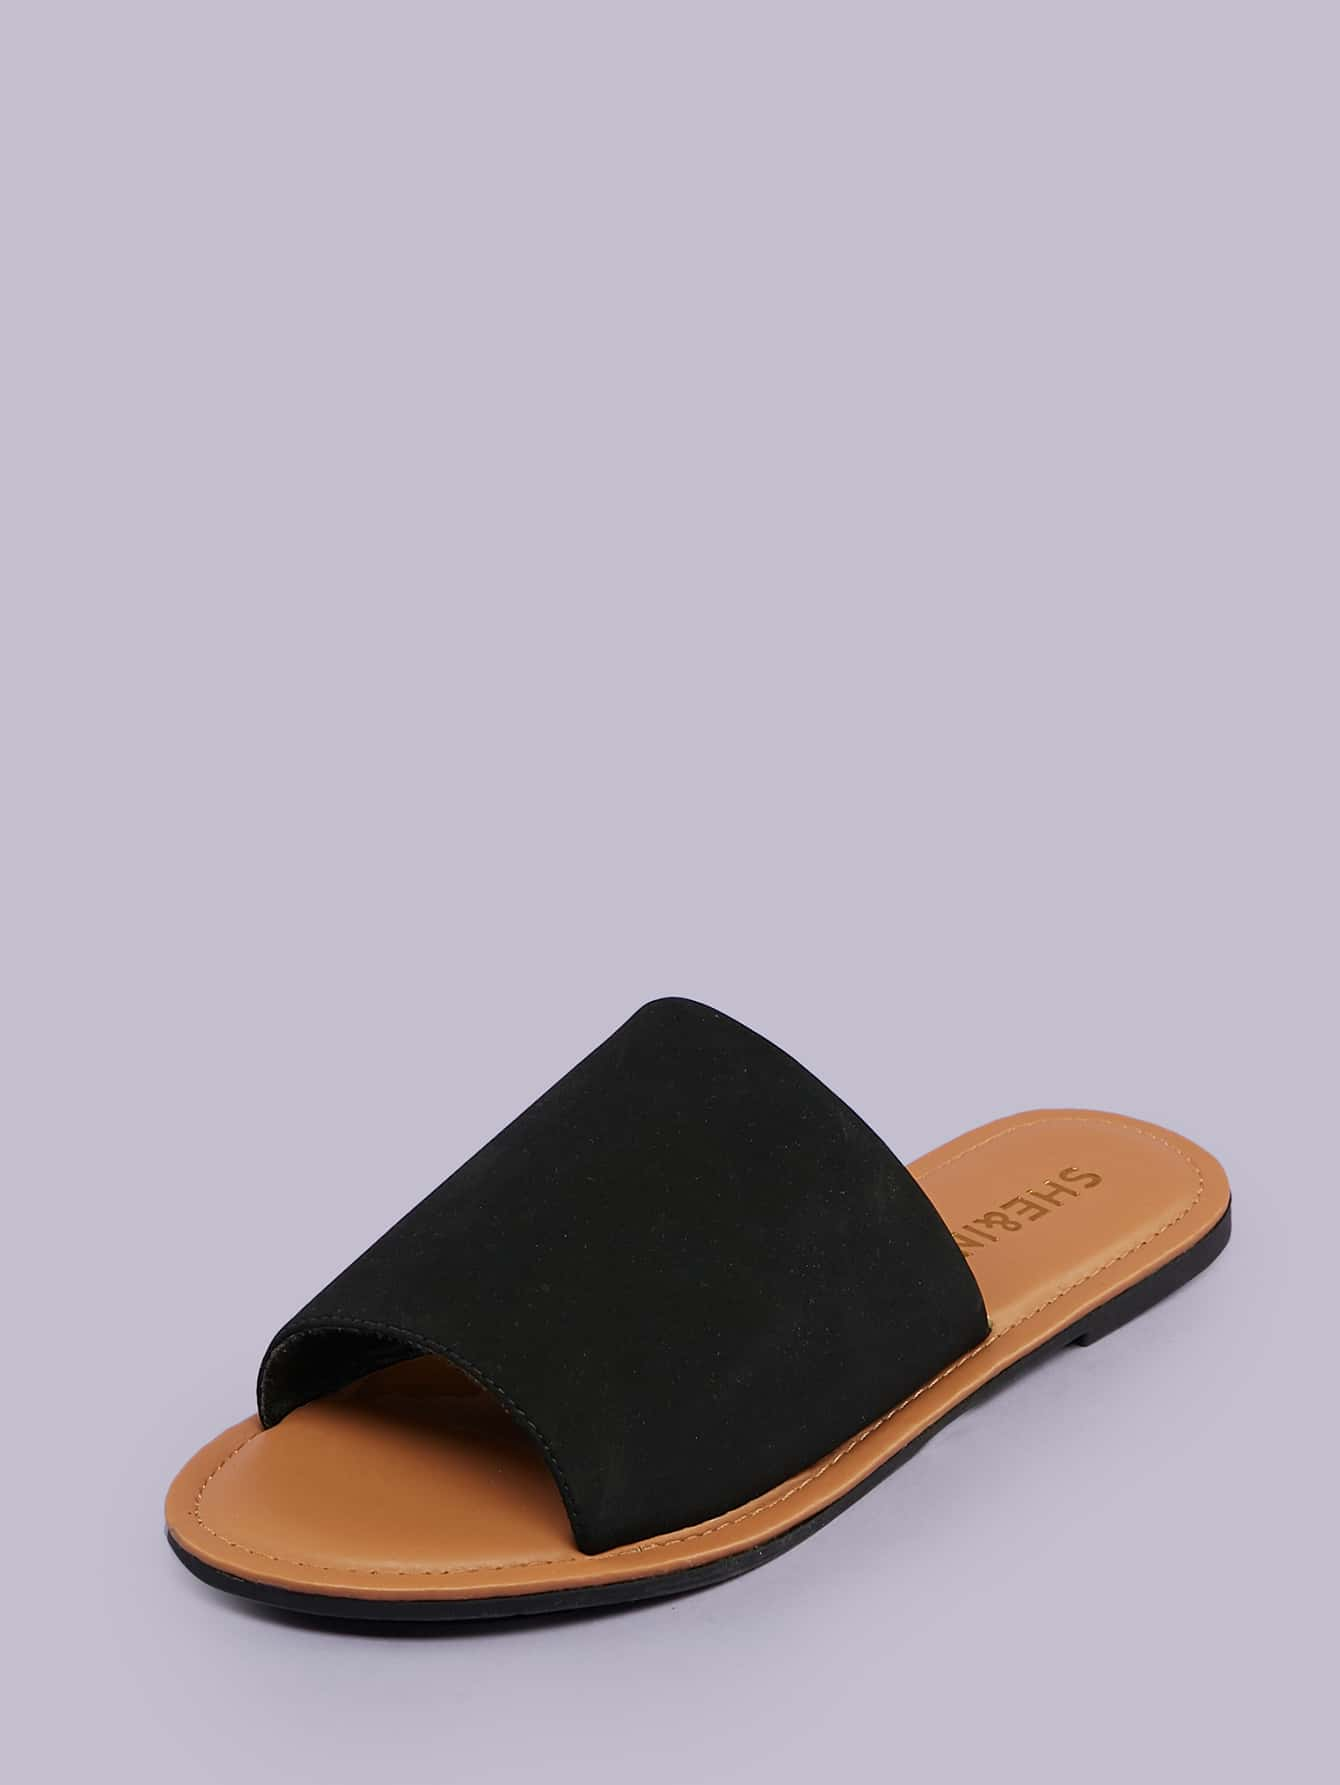 Open Toe Wide Band Flat Slide Sandals - FLJ CORPORATIONS